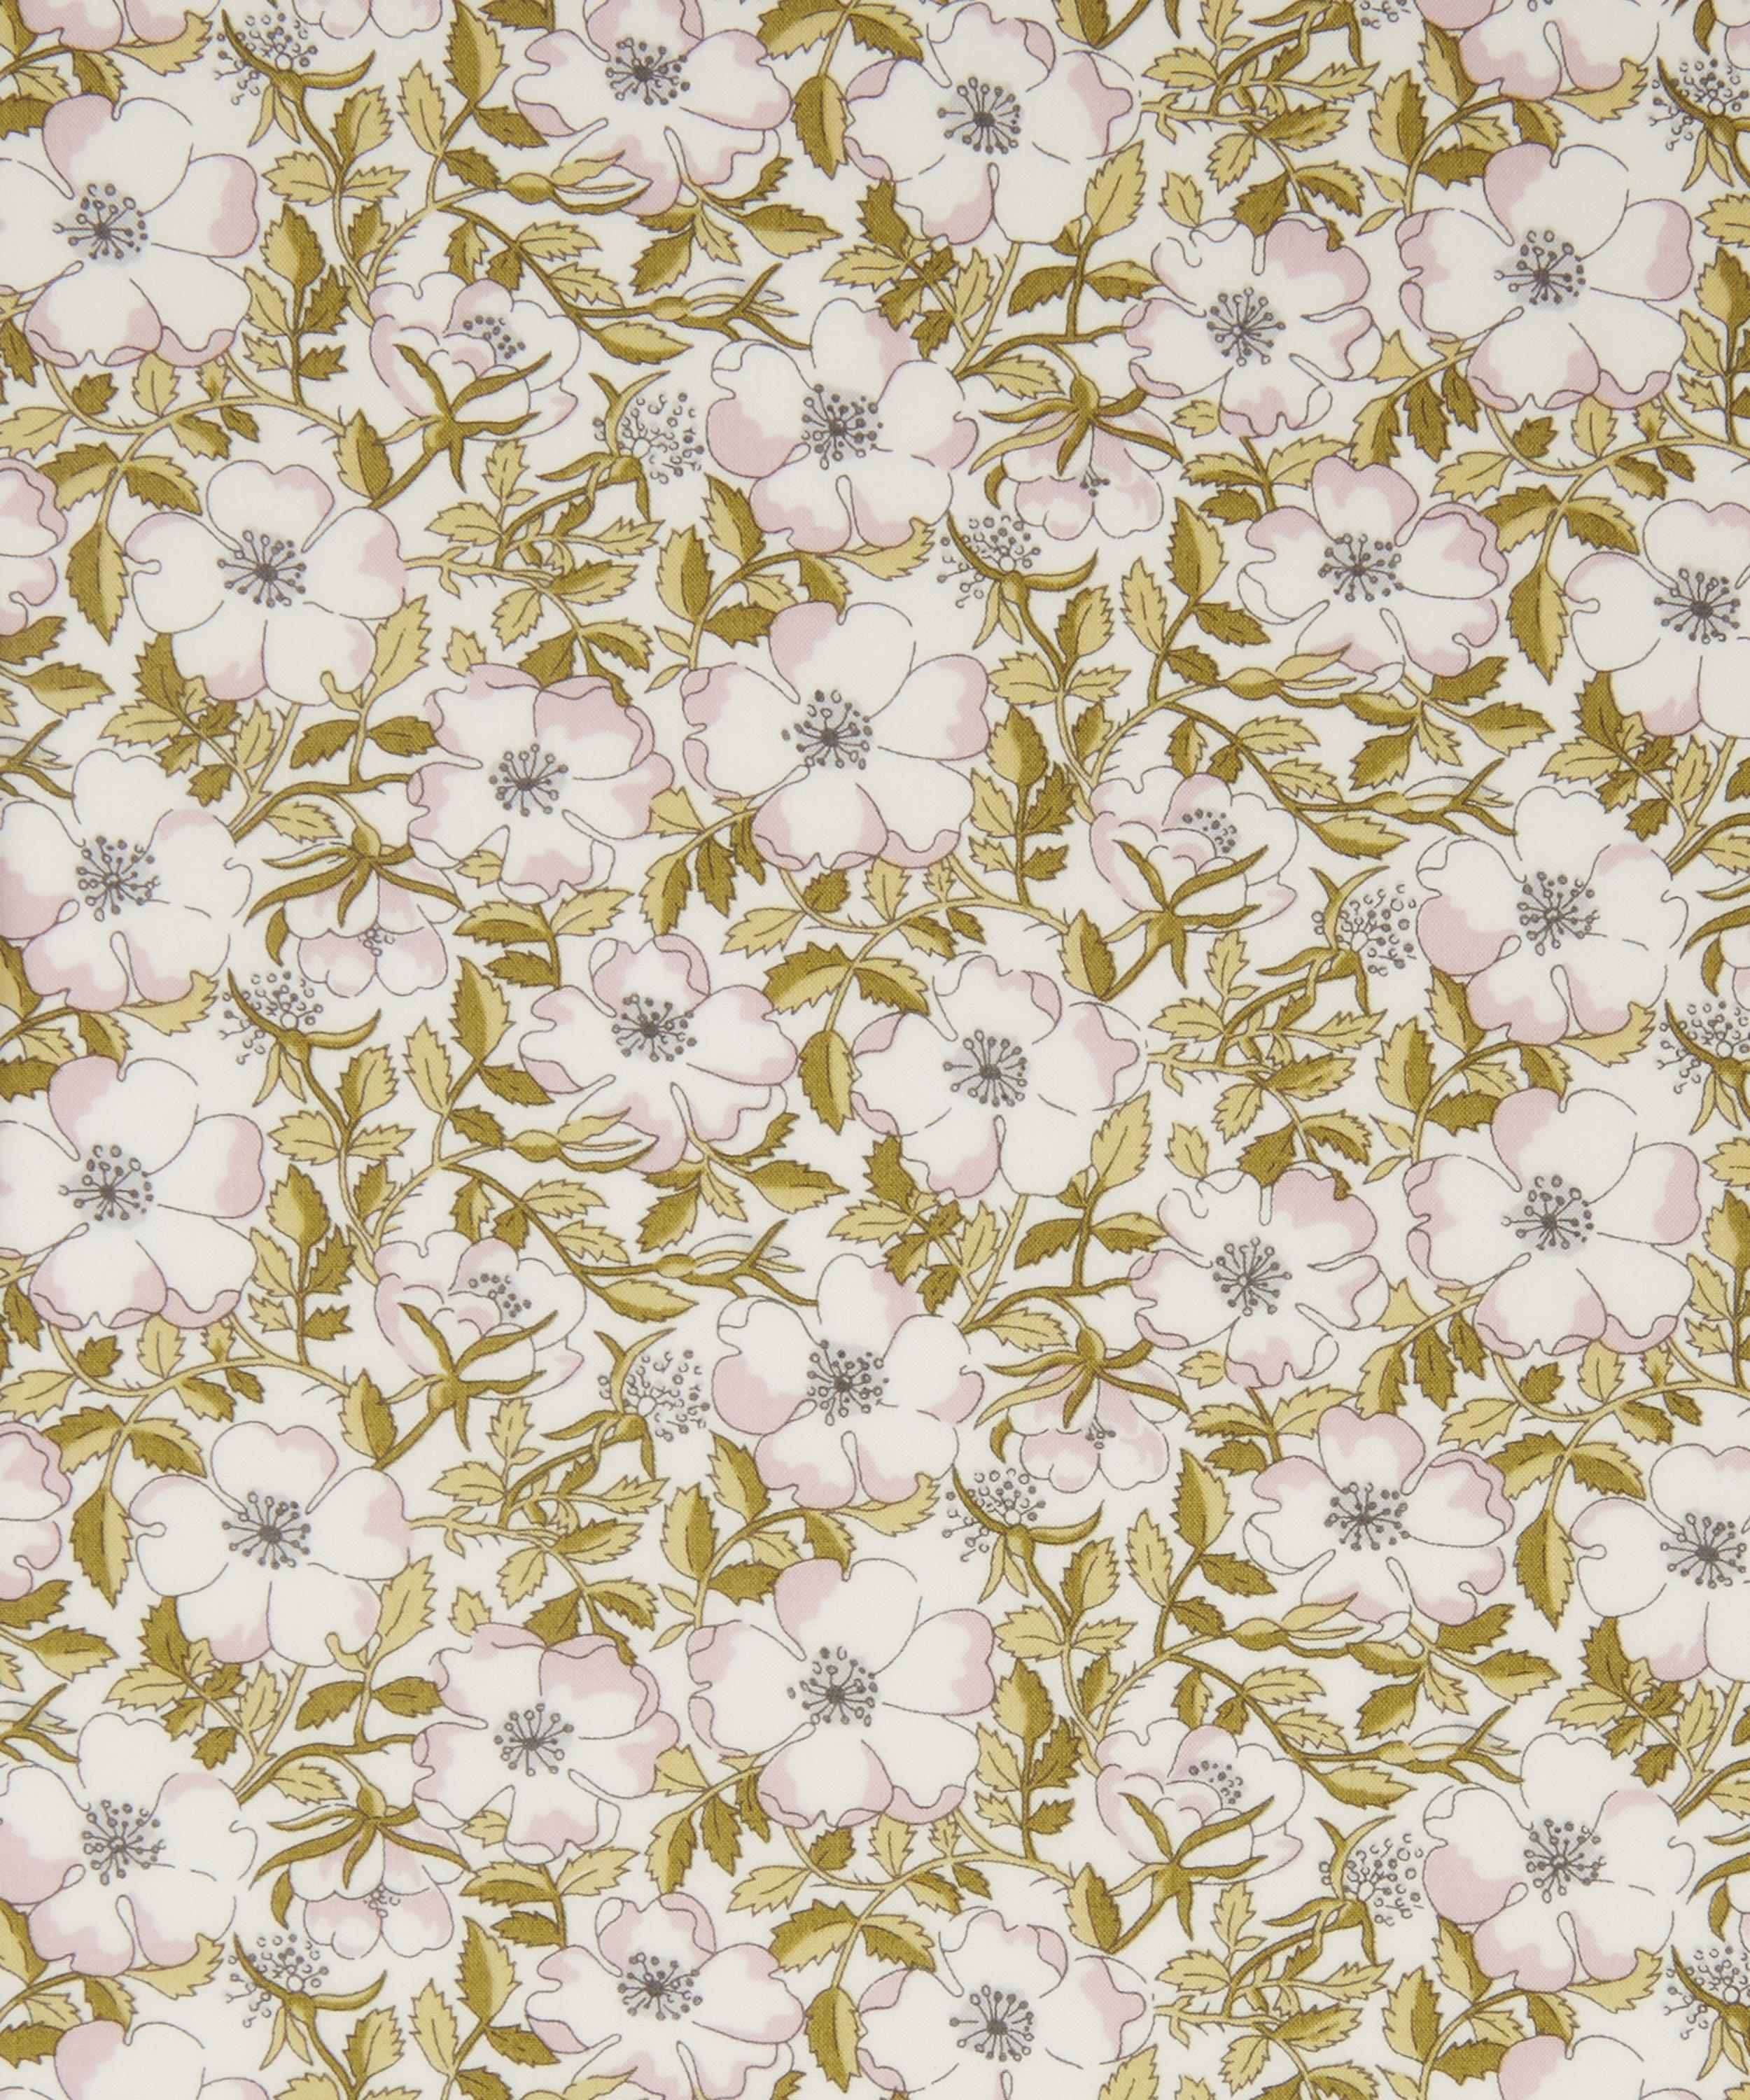 F899-2 Small Floral English Teatime Floral Print Fabric for Dolls House Project